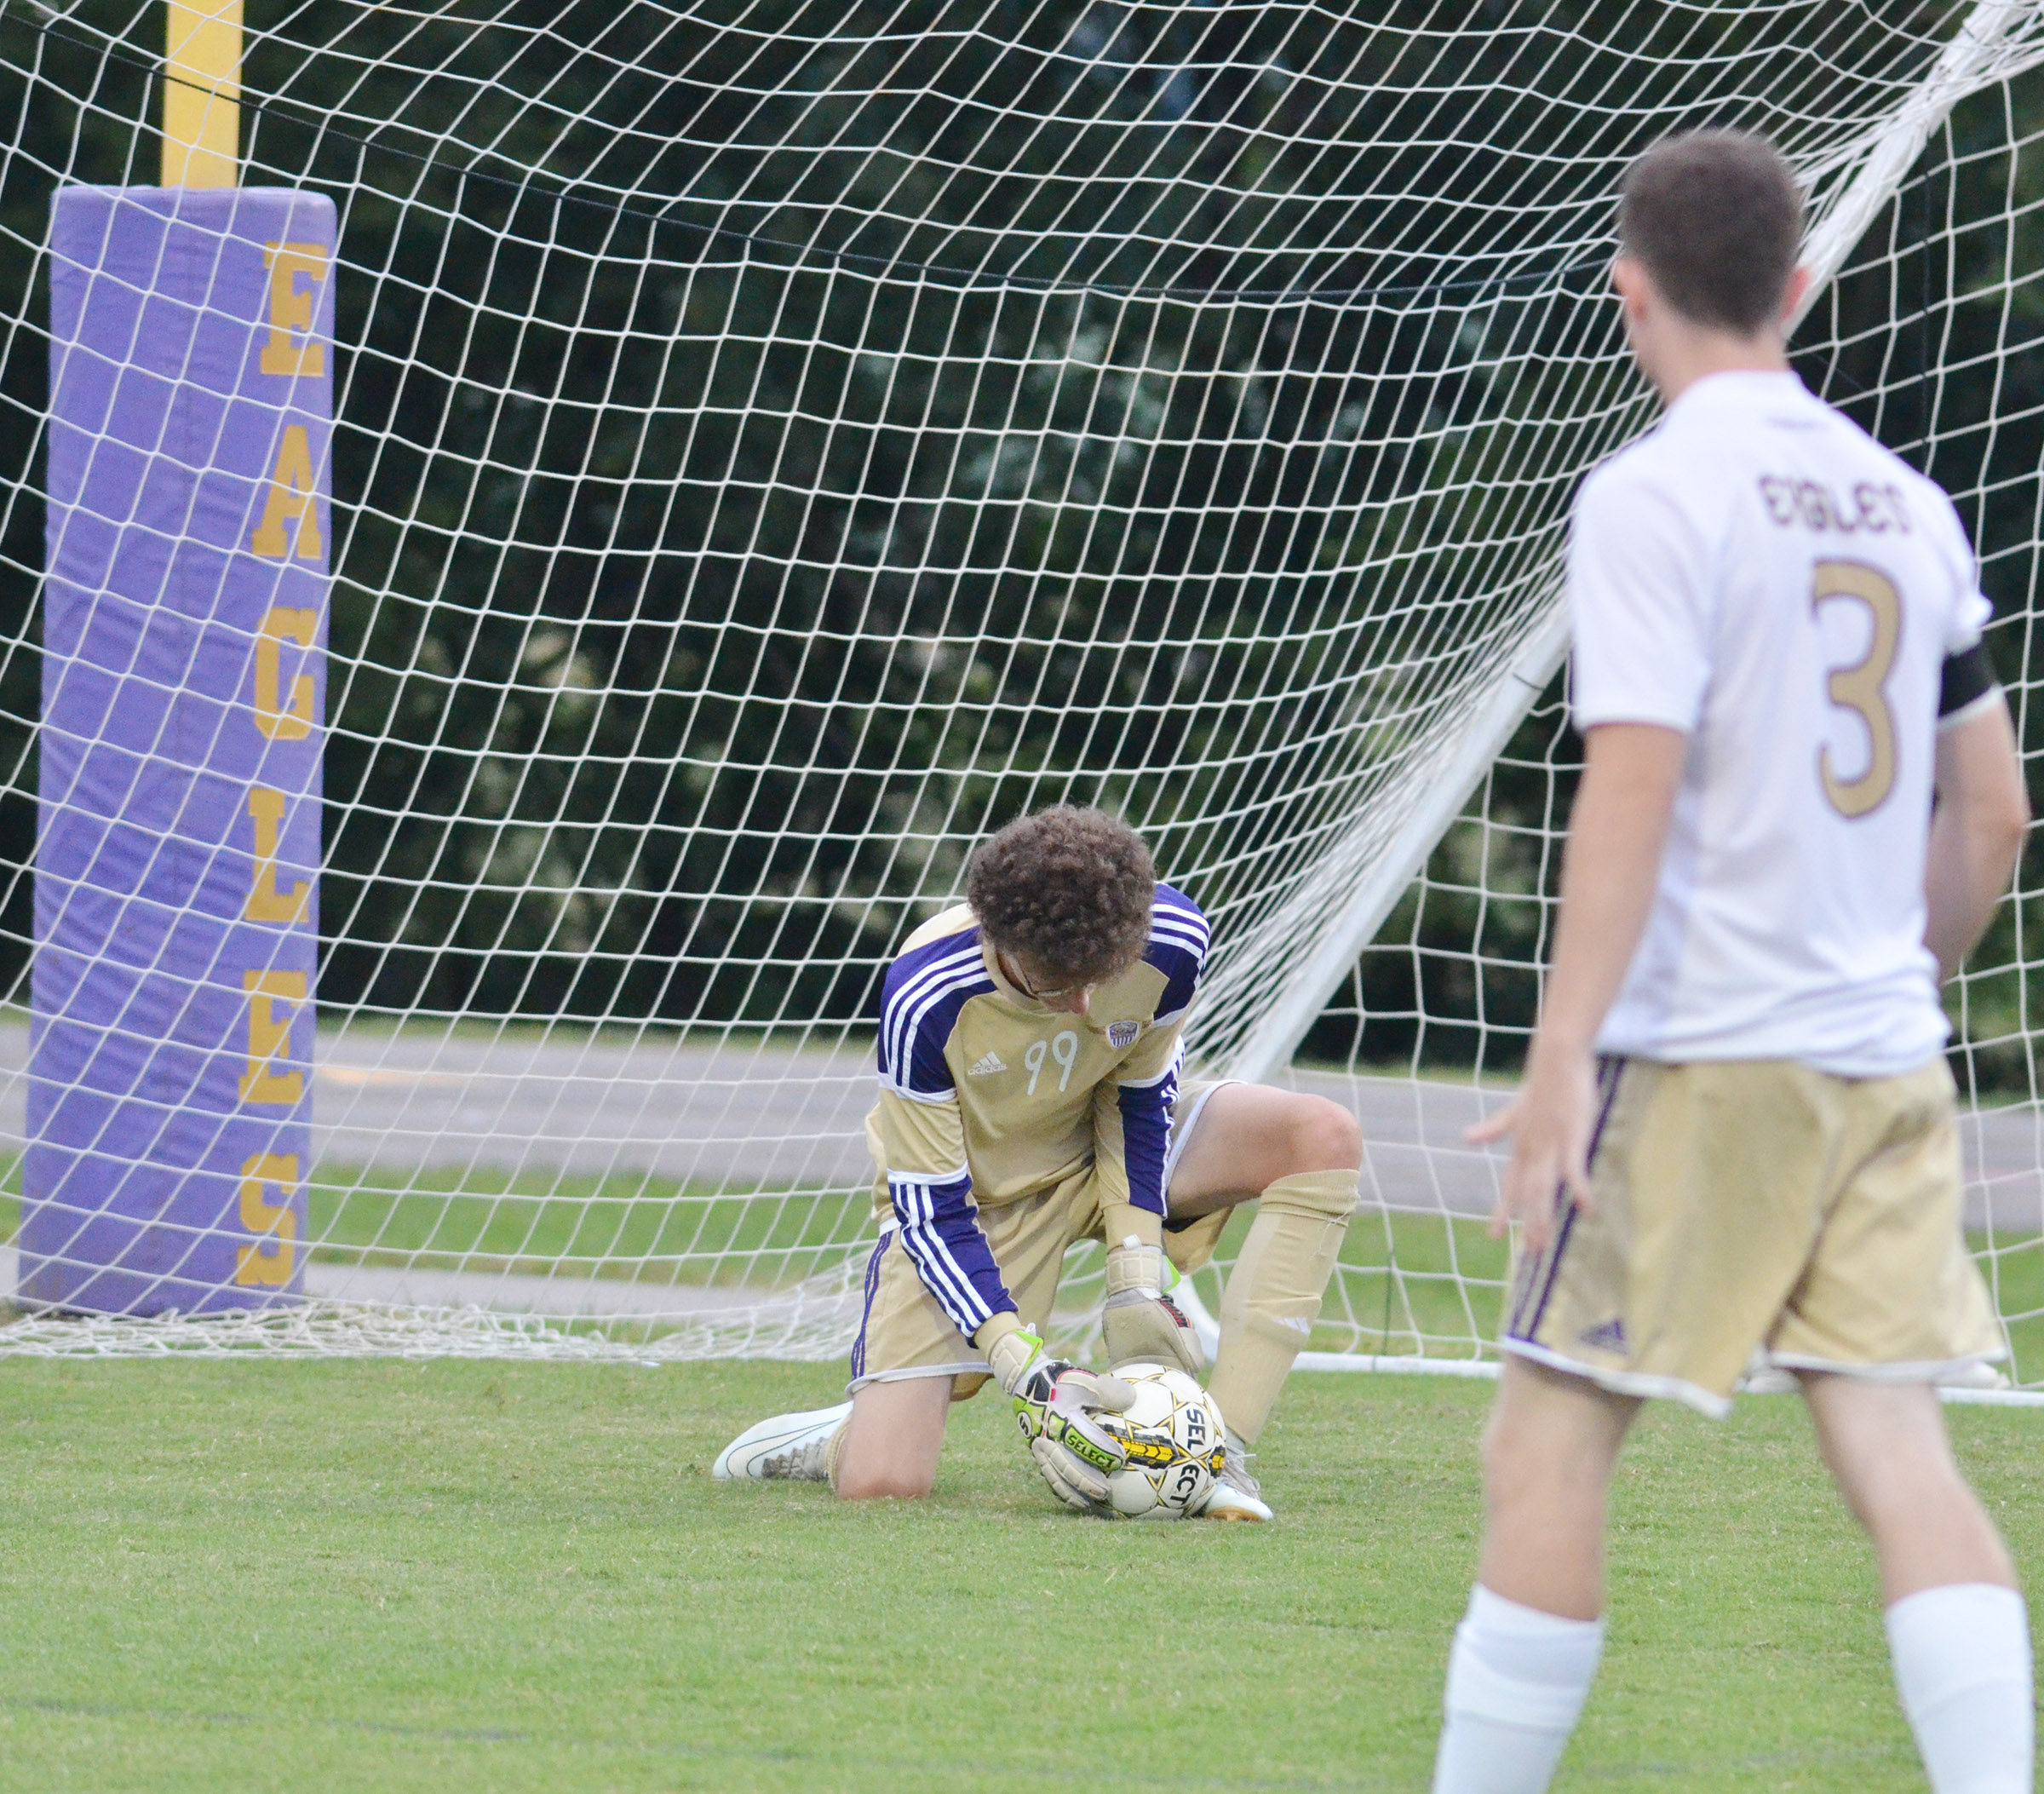 CHS sophomore Brennon Wheeler catches a goal attempt.